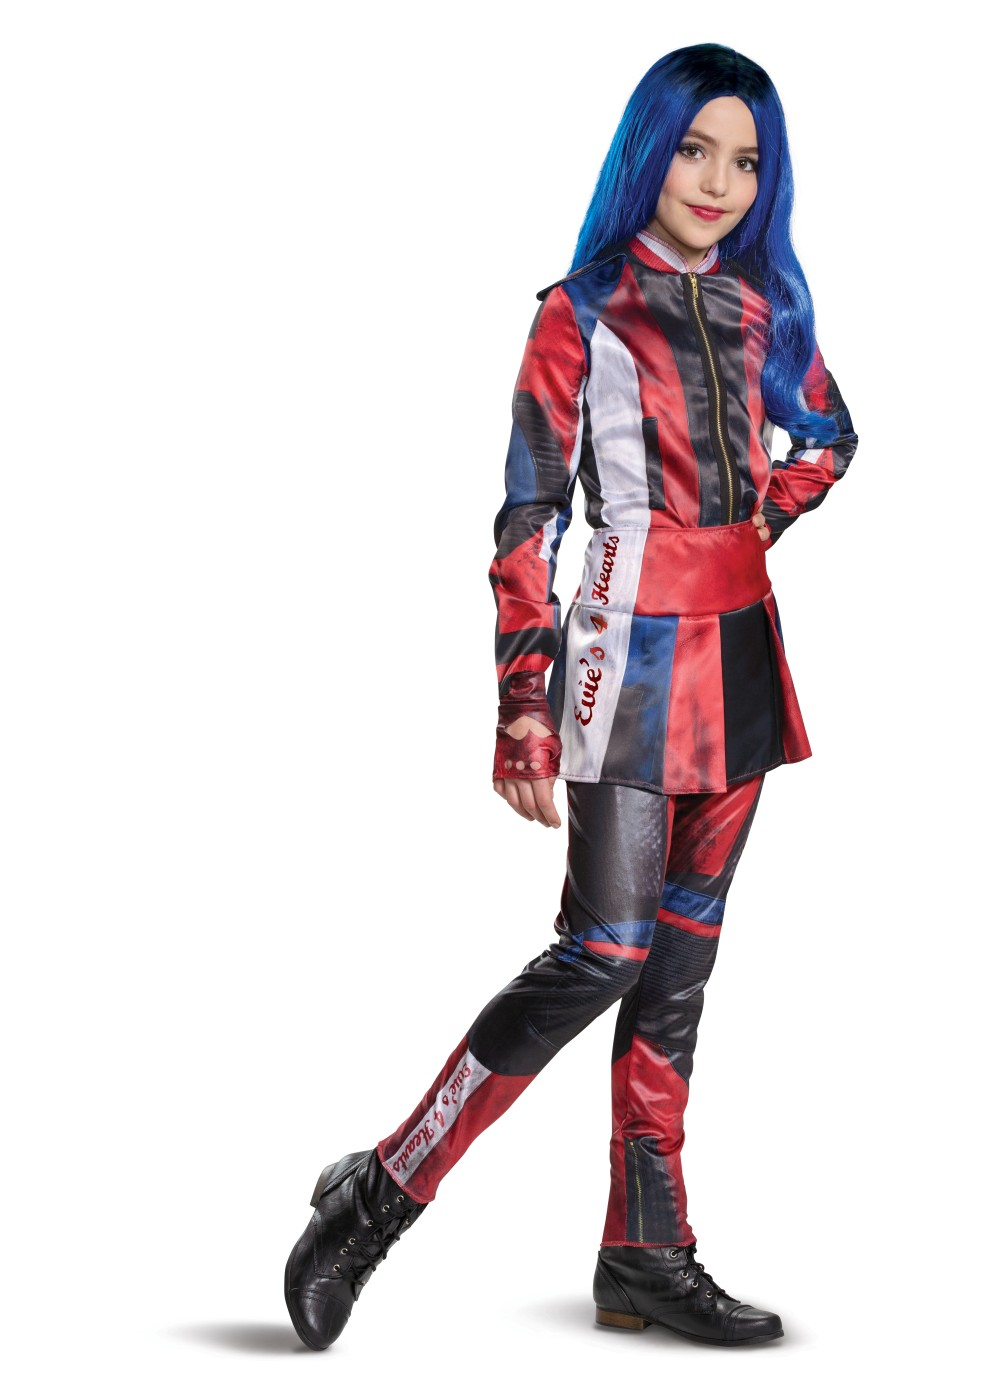 Kids Disney Evie Descendants 3 Deluxe Girl Costume